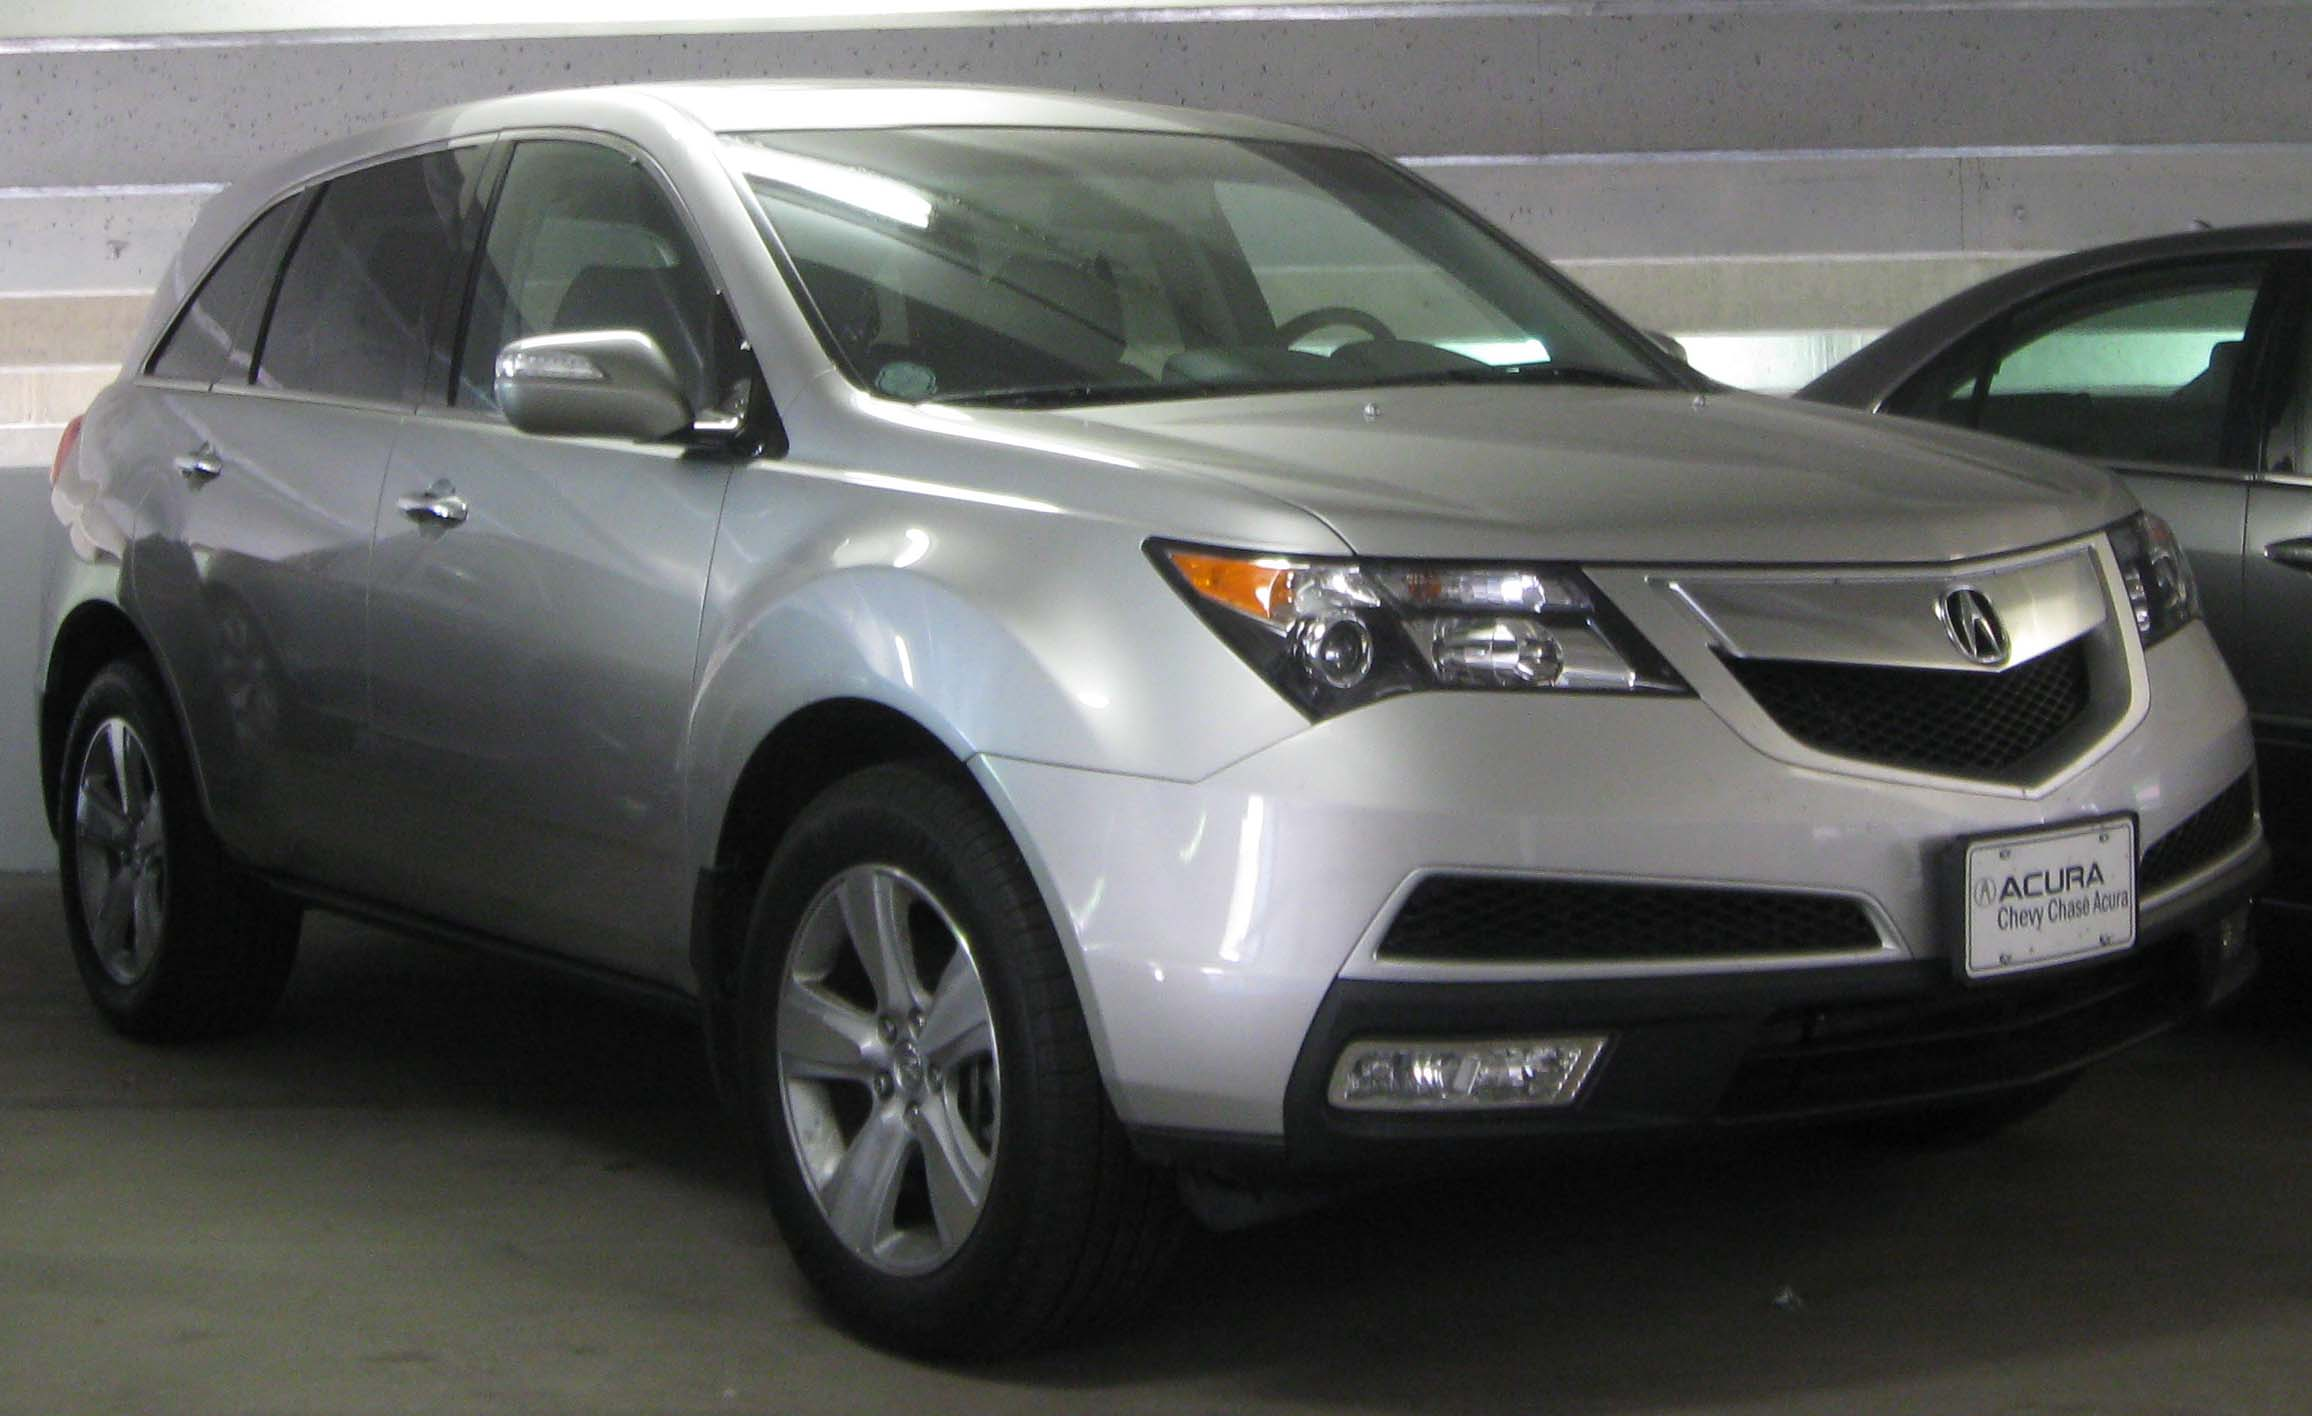 Image Result For Acura Mdx Interior